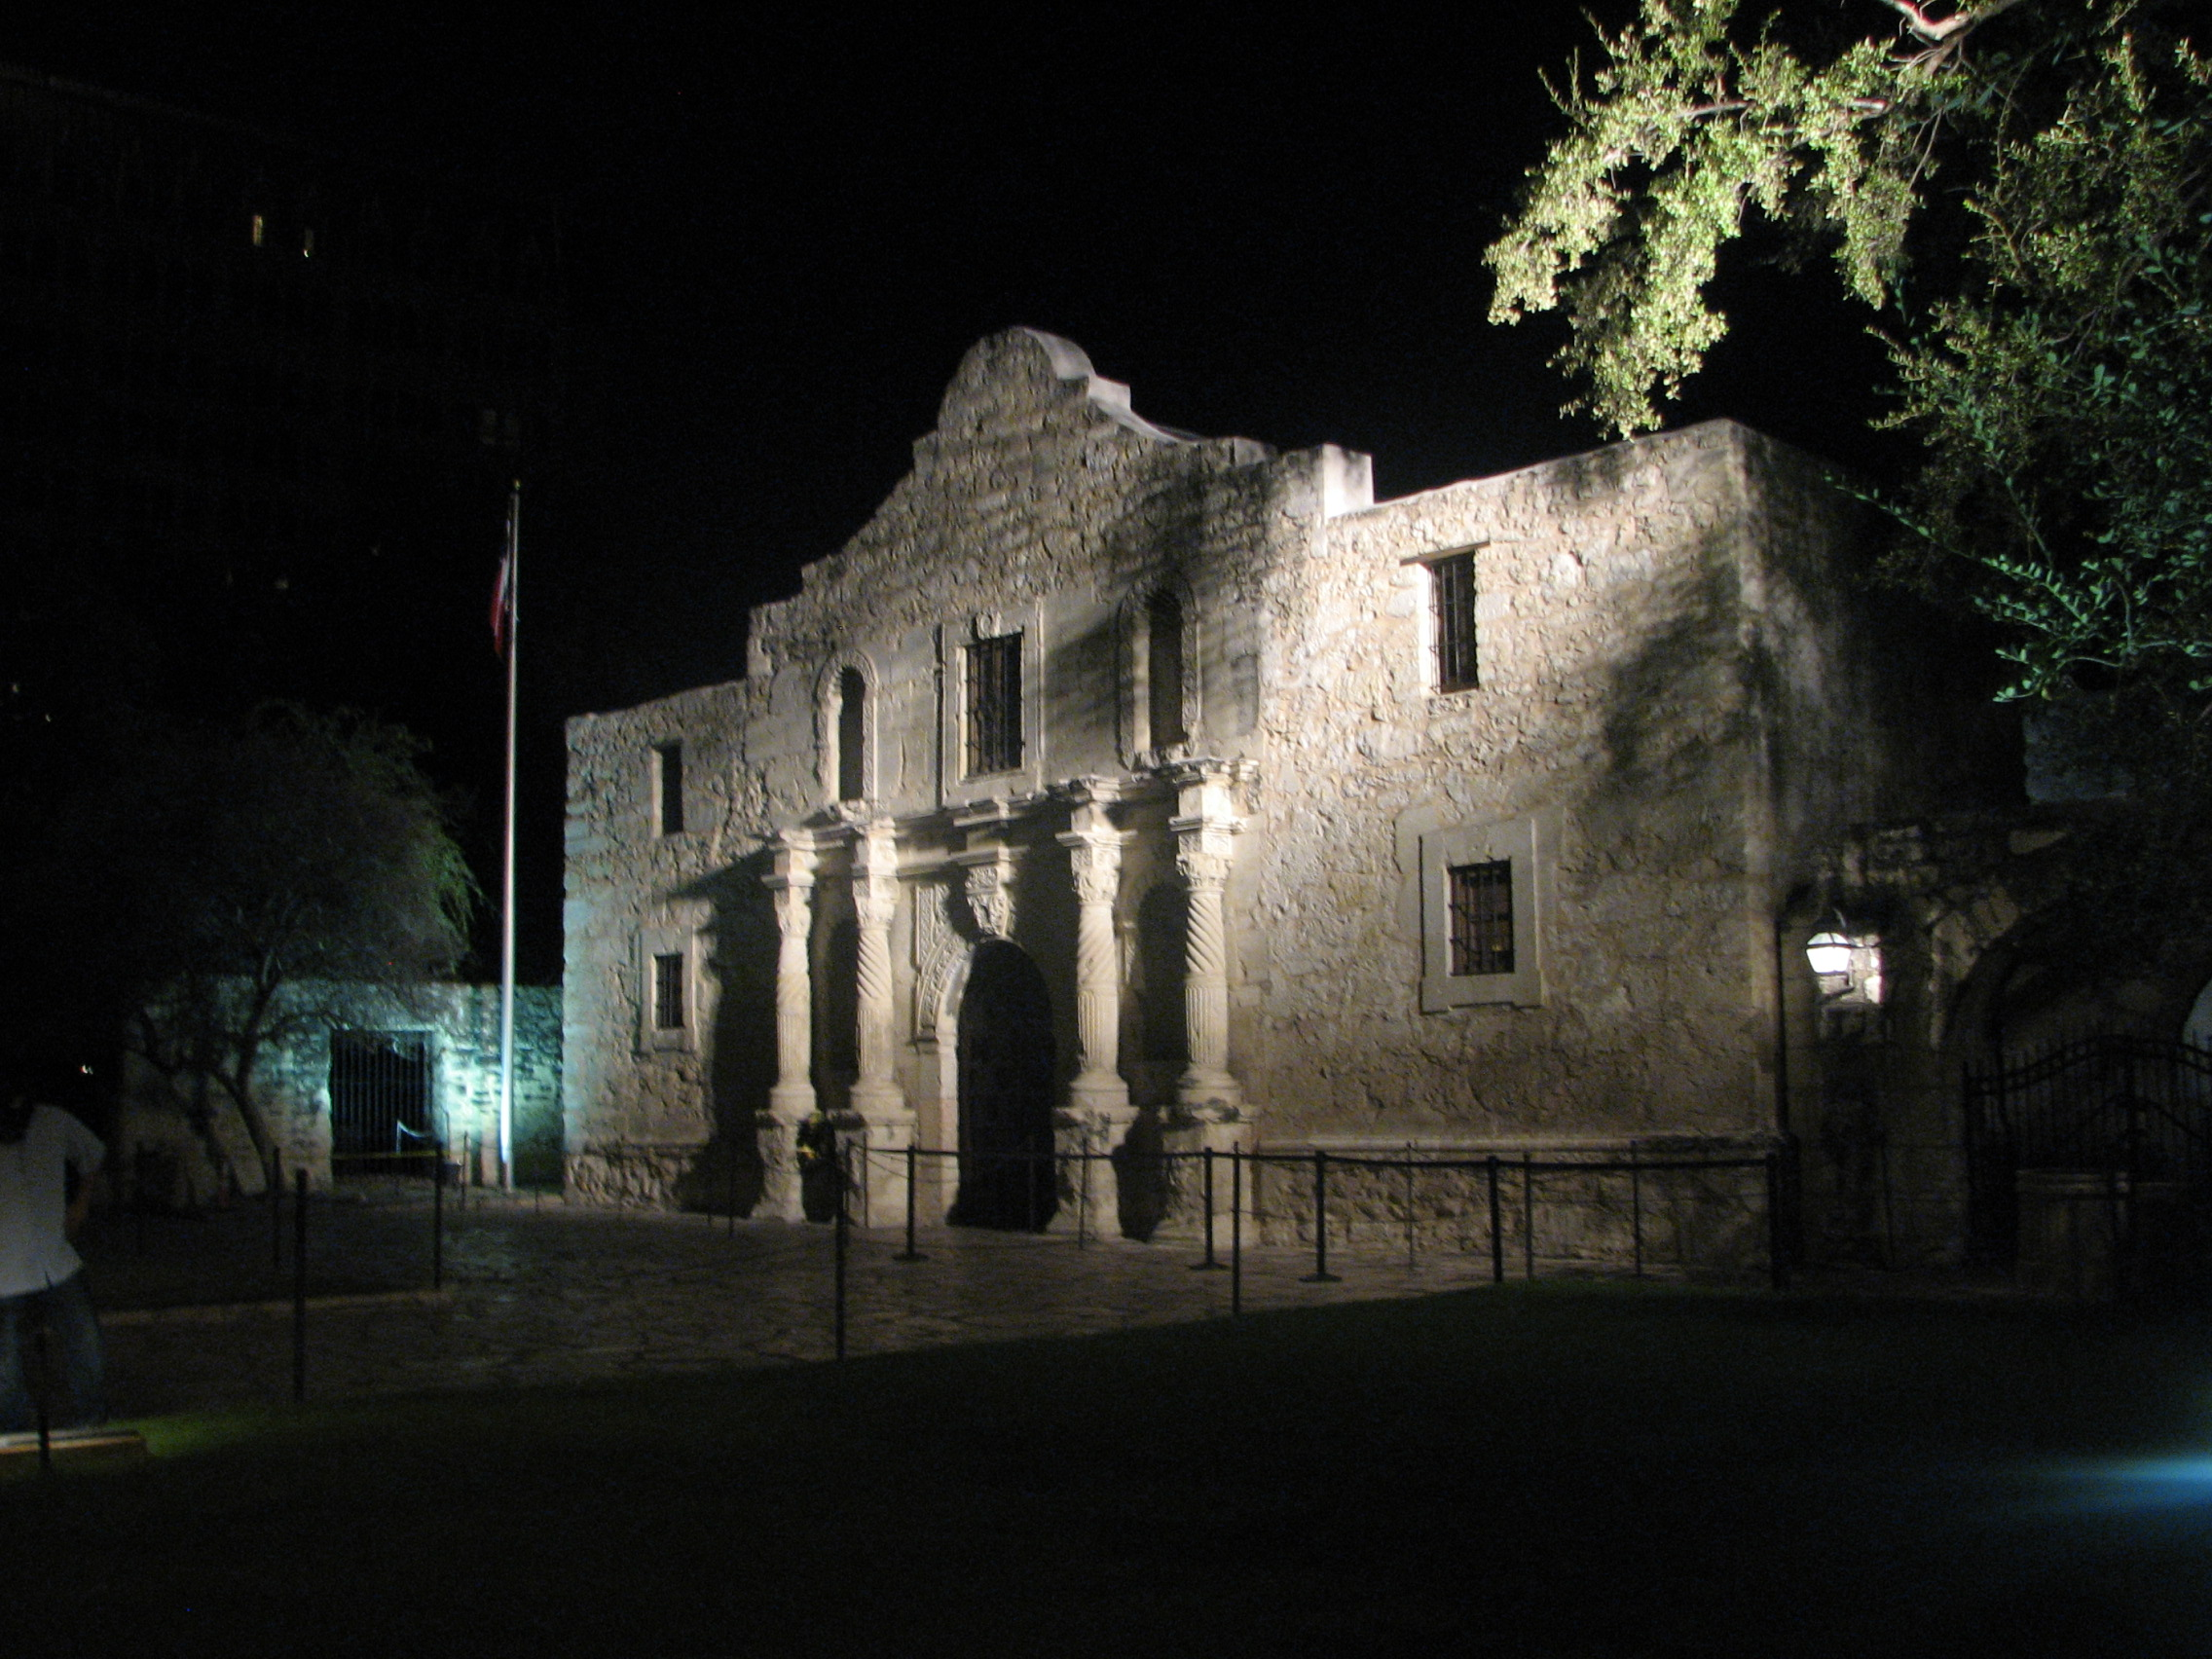 The Alamo with lights on it at night